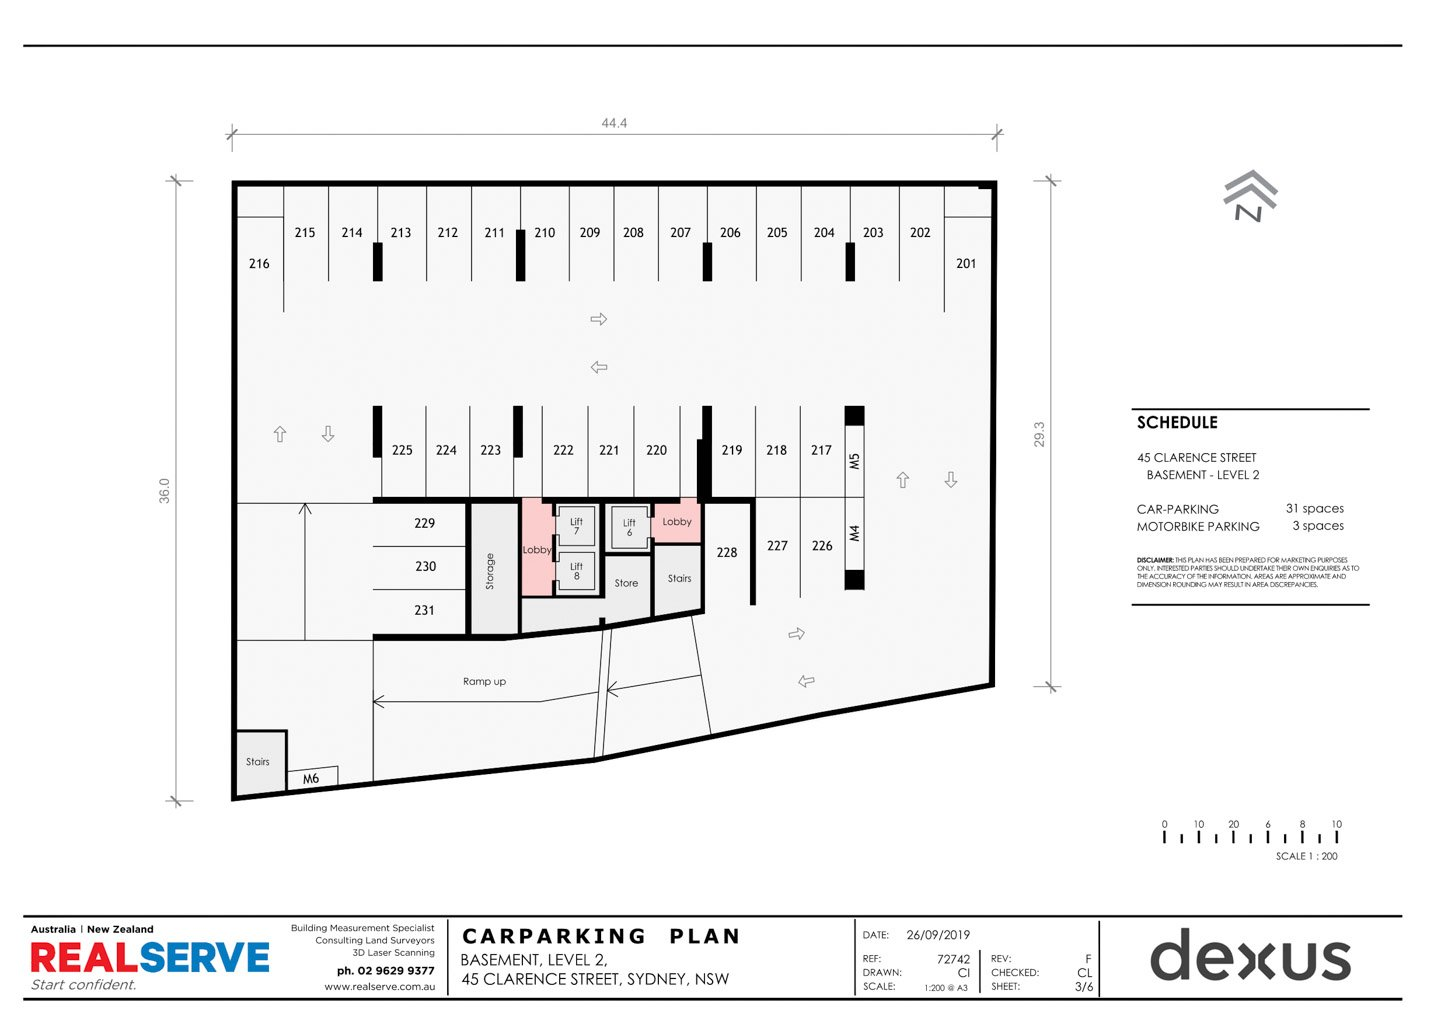 CAR PARKING PLAN FROM REALSERVE FOR A CITY BUILDING